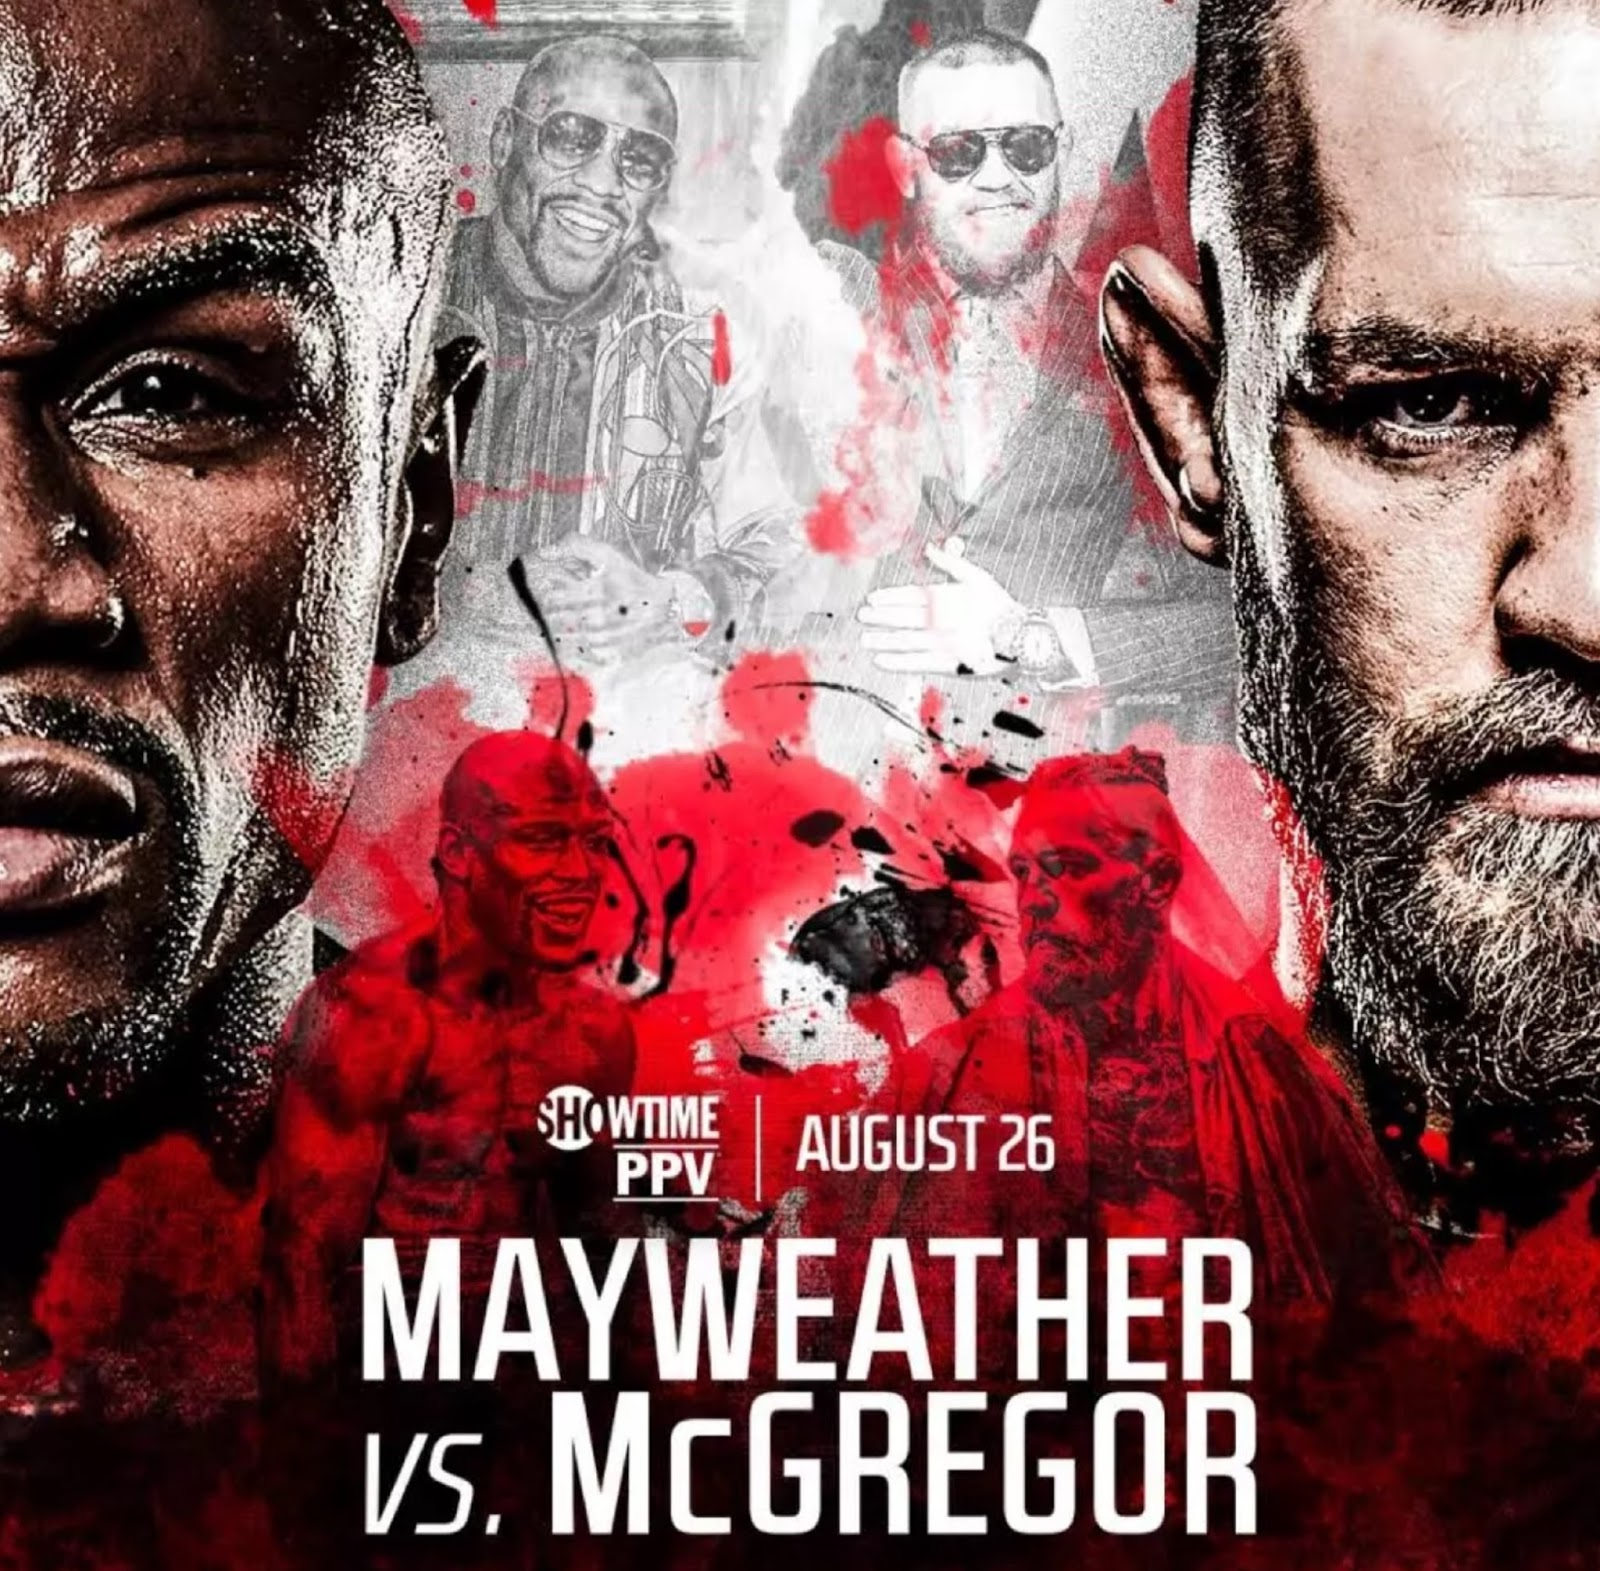 FLOYD MAYWEATHER VS. CONOR MCGREGOR 22